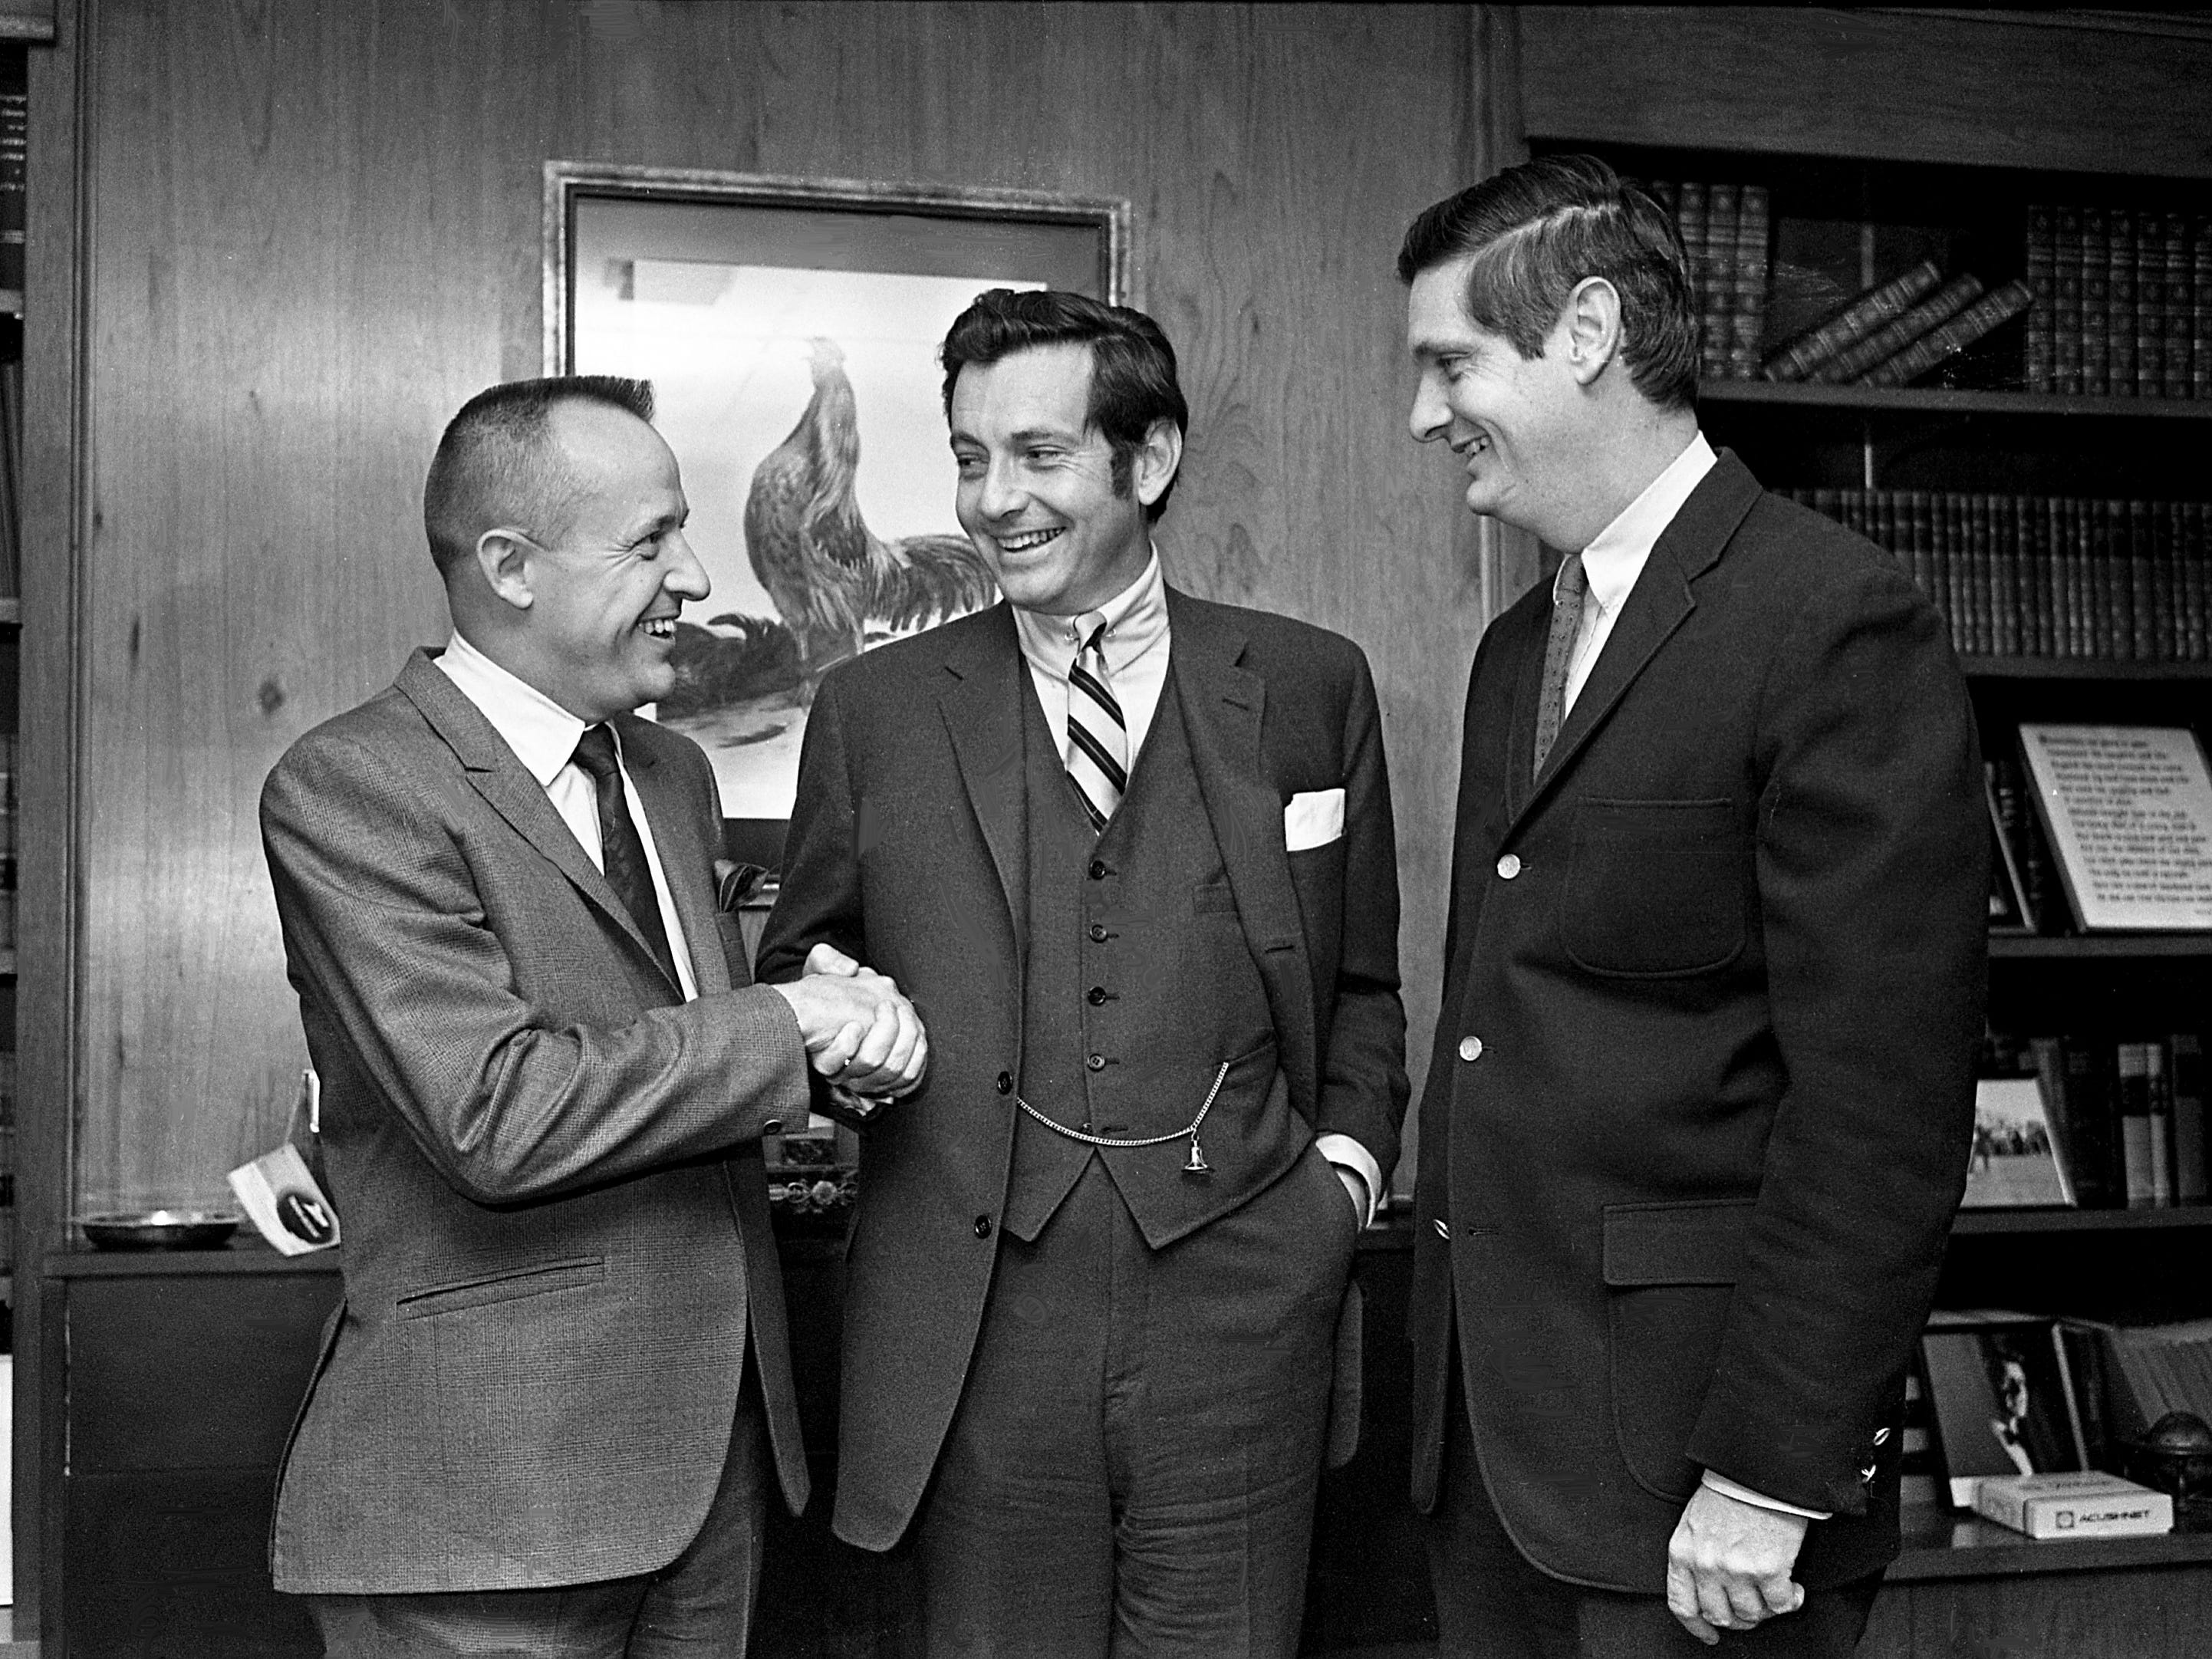 David A. Barrett, left, executive vice president of a newly organized system of child care centers, receives a handshake from John Jay Hooker Jr., president of the firm, as Henry W. Hooker, vice chairman of the board, looks on after the announcement of the still-unnamed company during a news conference Dec. 28, 1968. They say a minimum of 1,000 preschool educational play centers is their goal and the plans for a model center are now being developed.